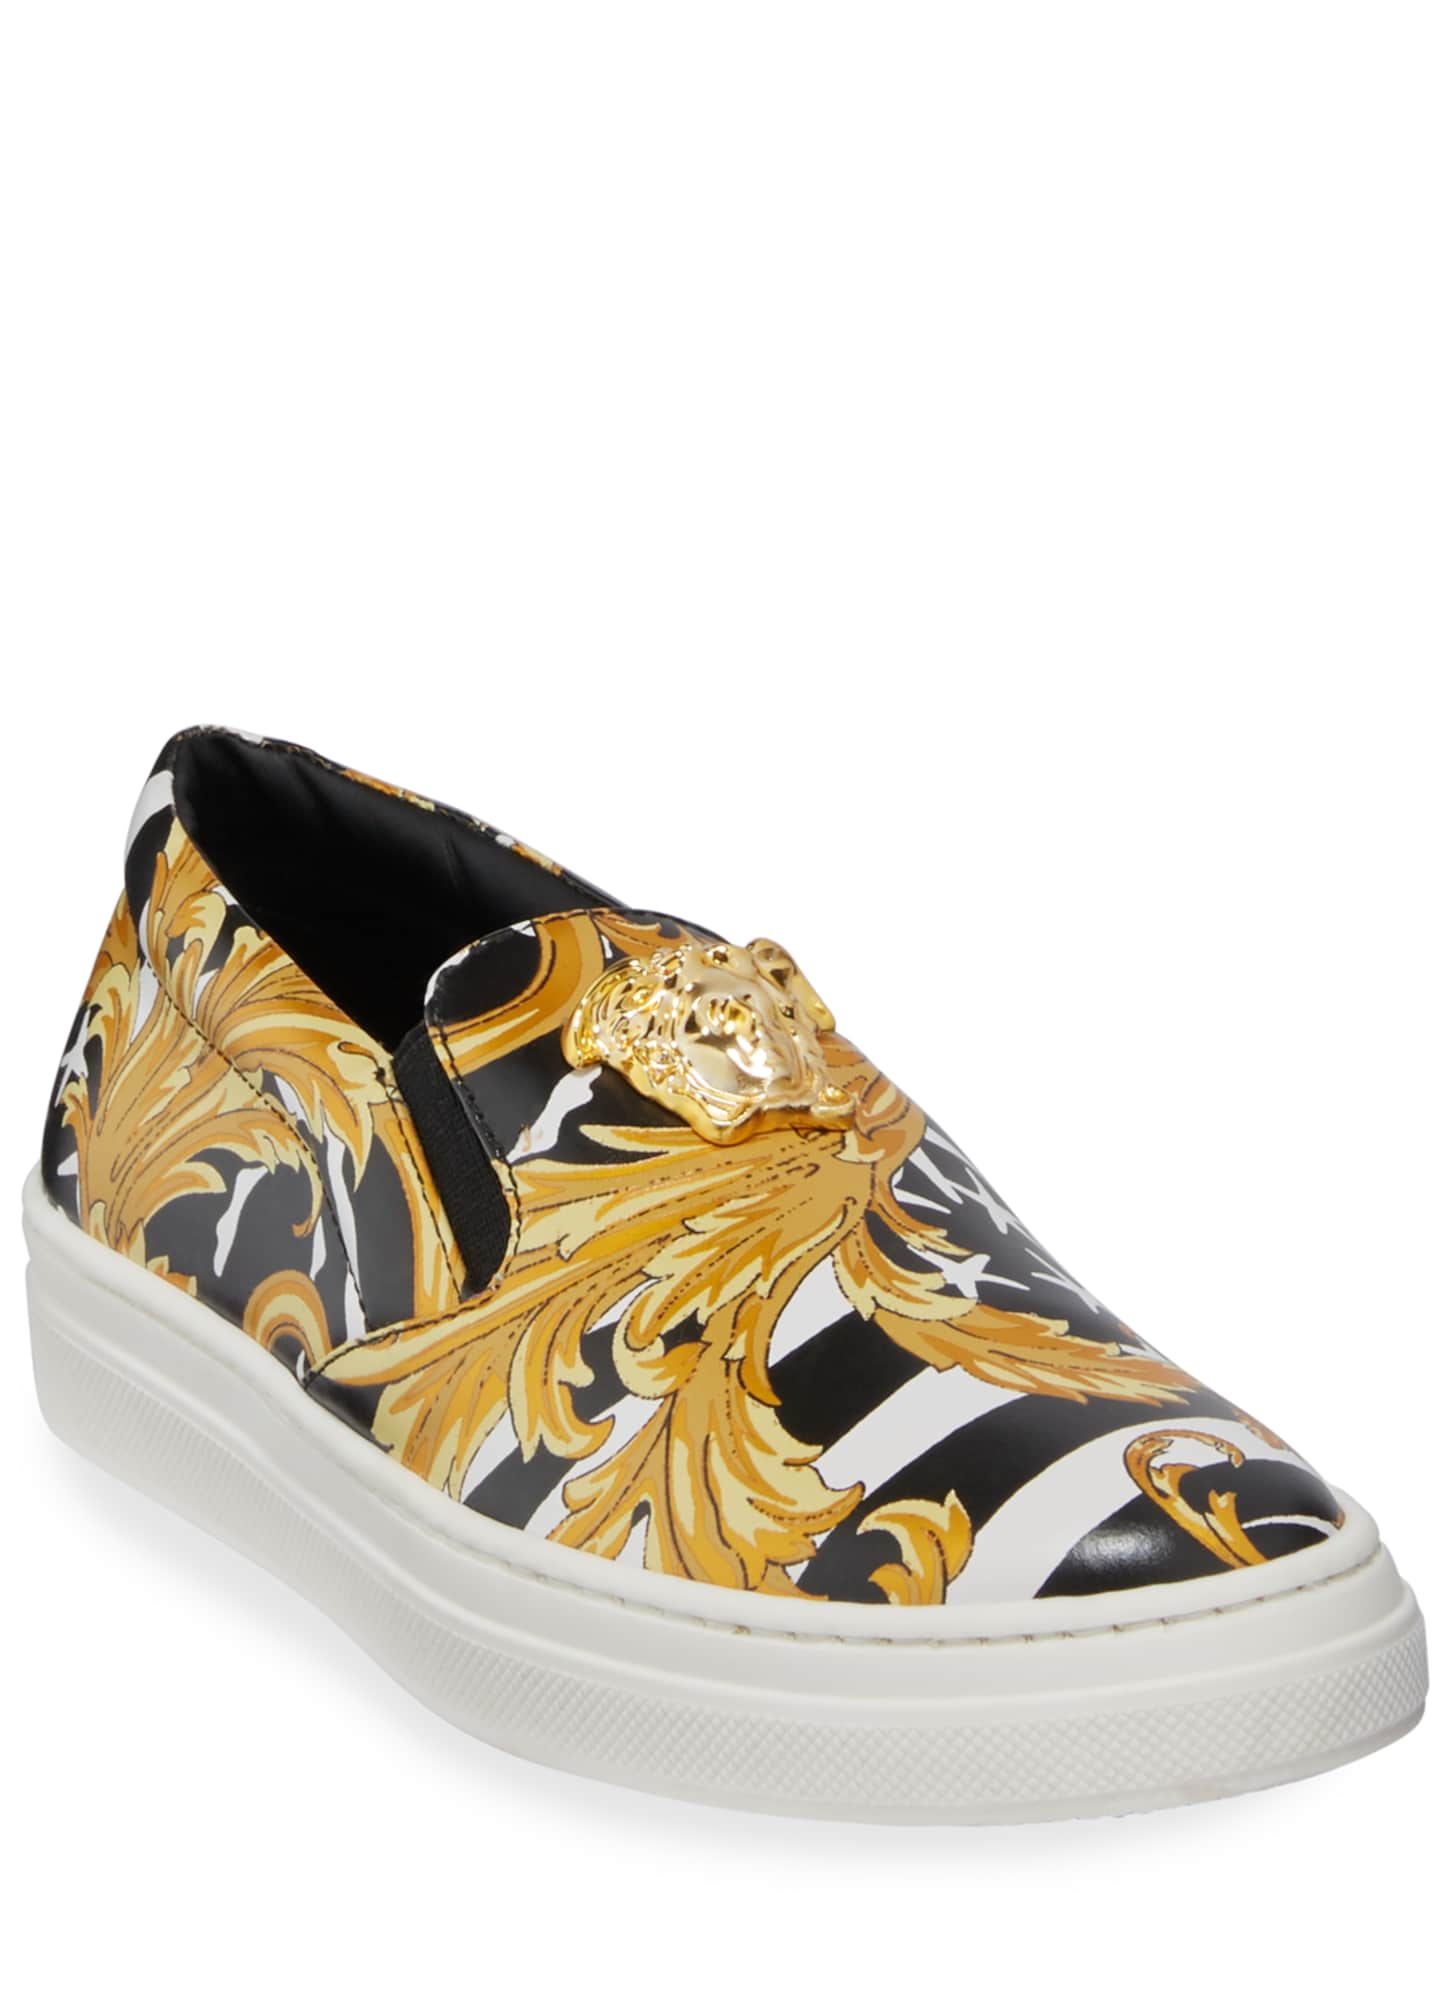 Versace Barocco Print Slip-On Sneakers, Kids